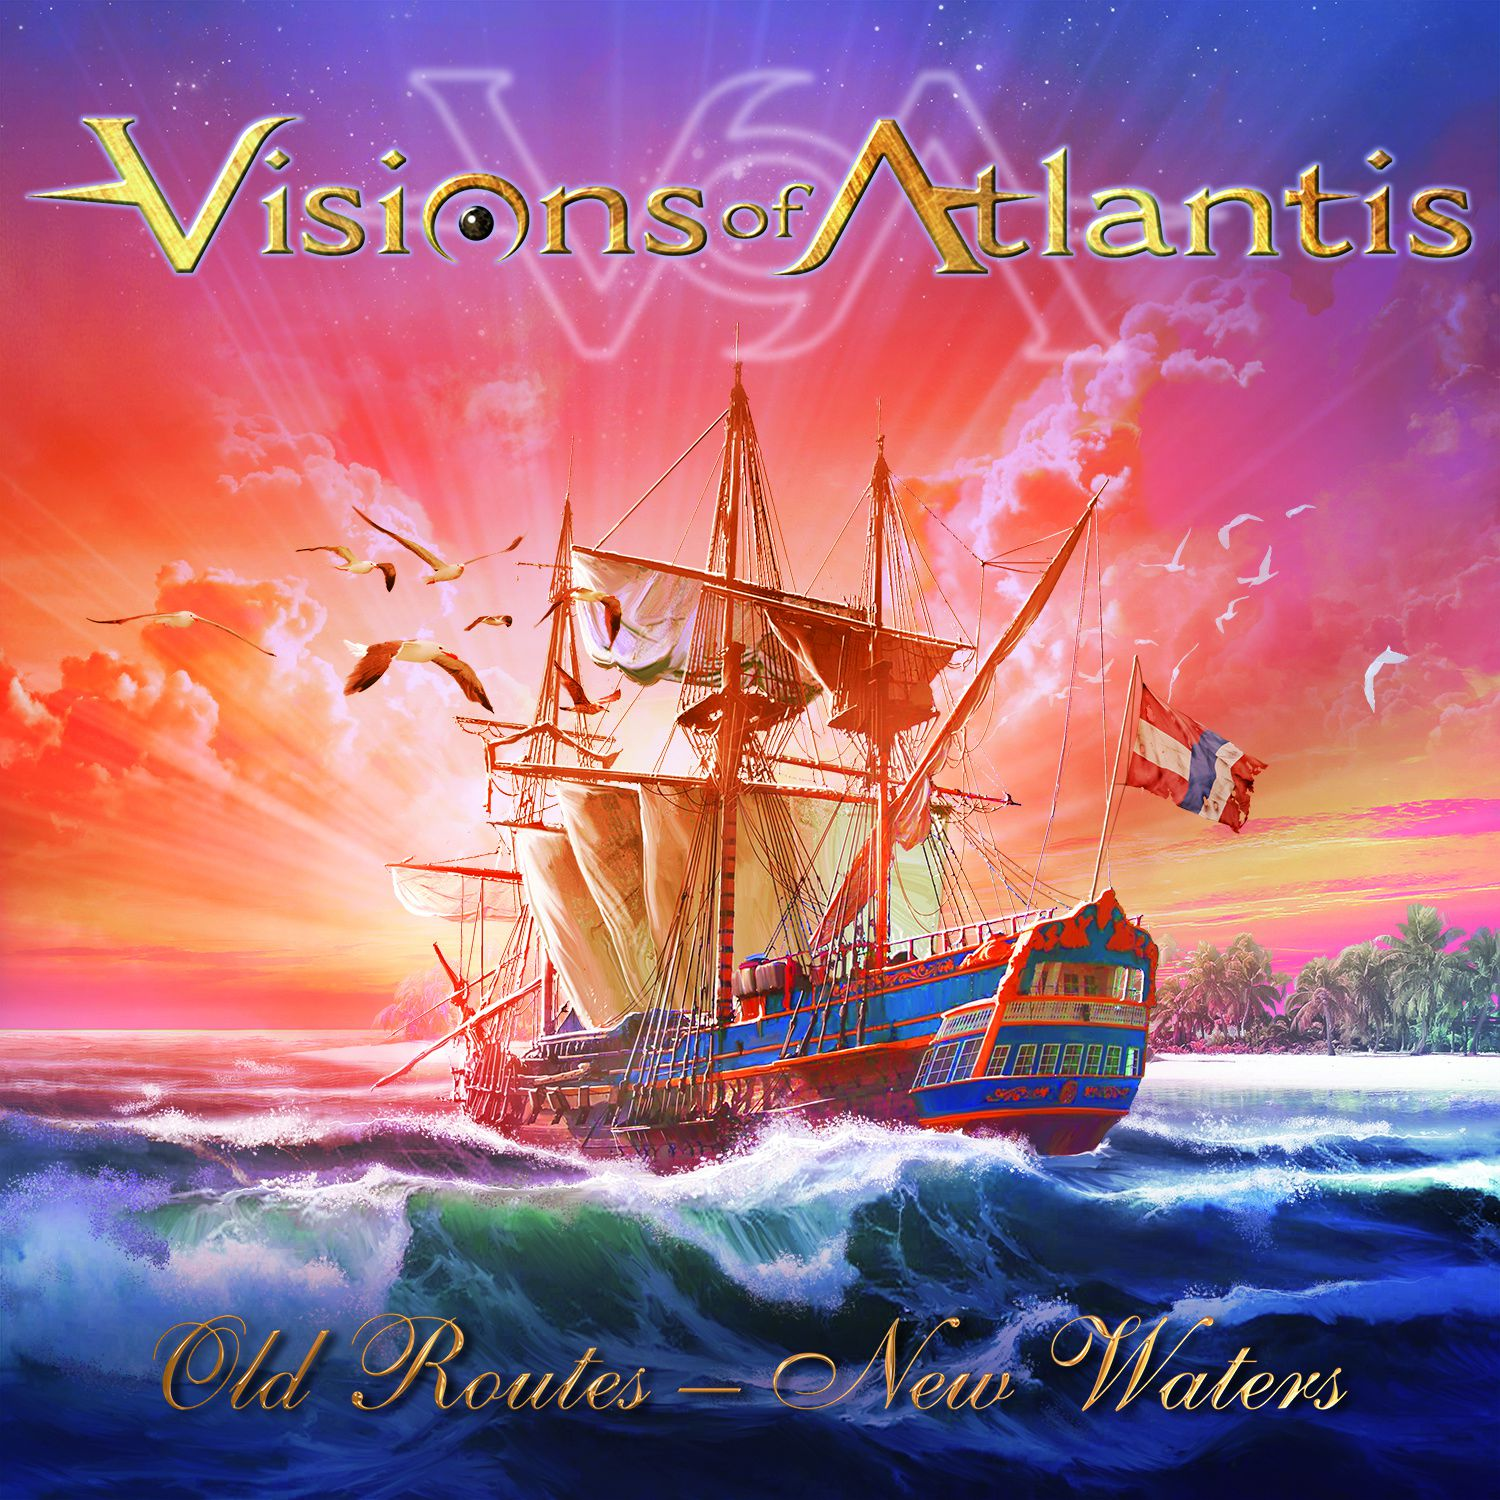 CD review VISIONS OF ATLANTIS &quot&#x3B;Old Routes - New Waters&quot&#x3B;